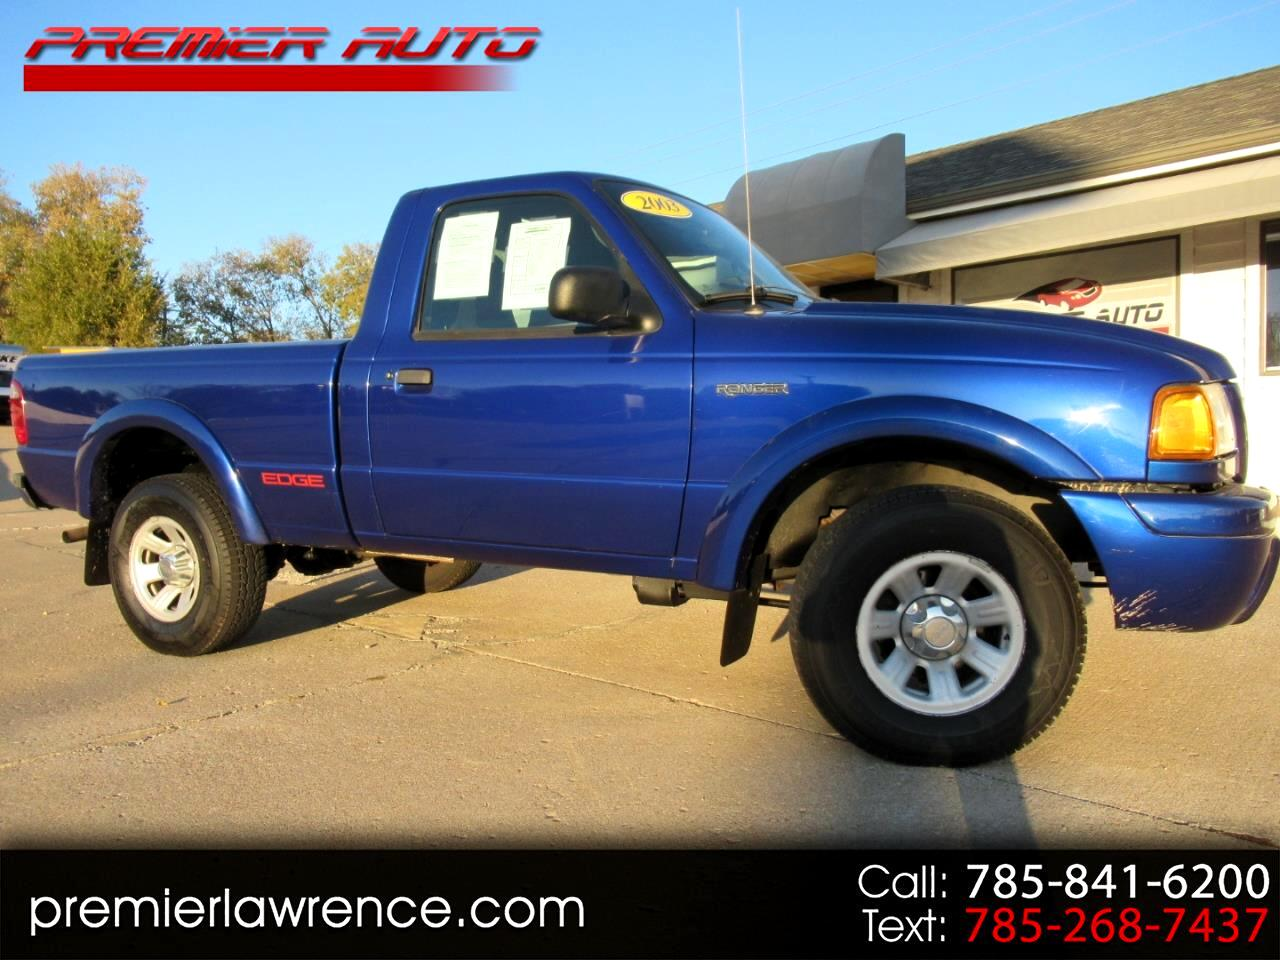 Ford Ranger Edge Short Bed 2WD 2003